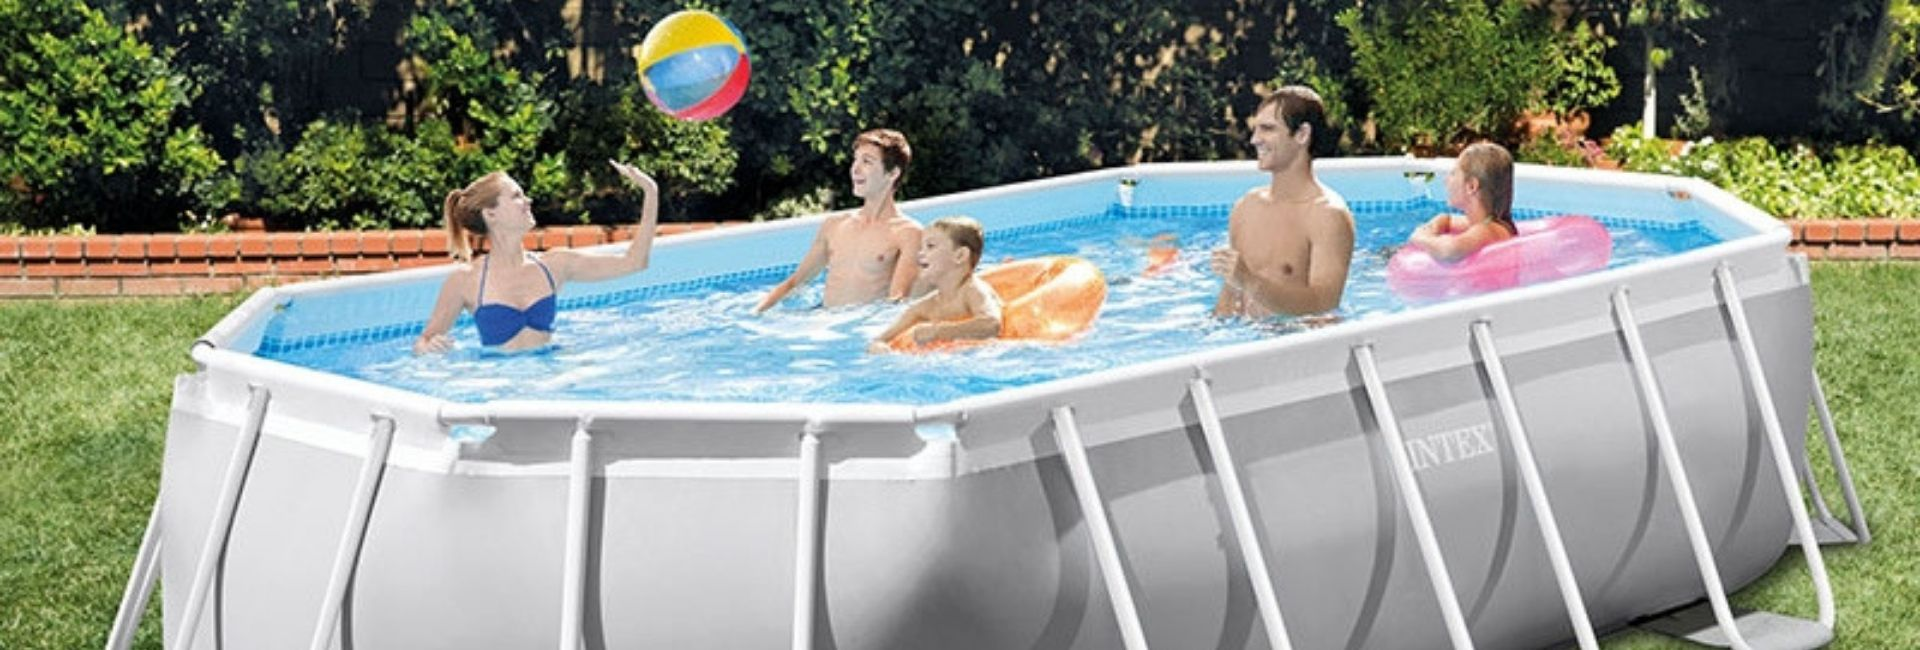 accessoriser piscine tubulaire.jpg